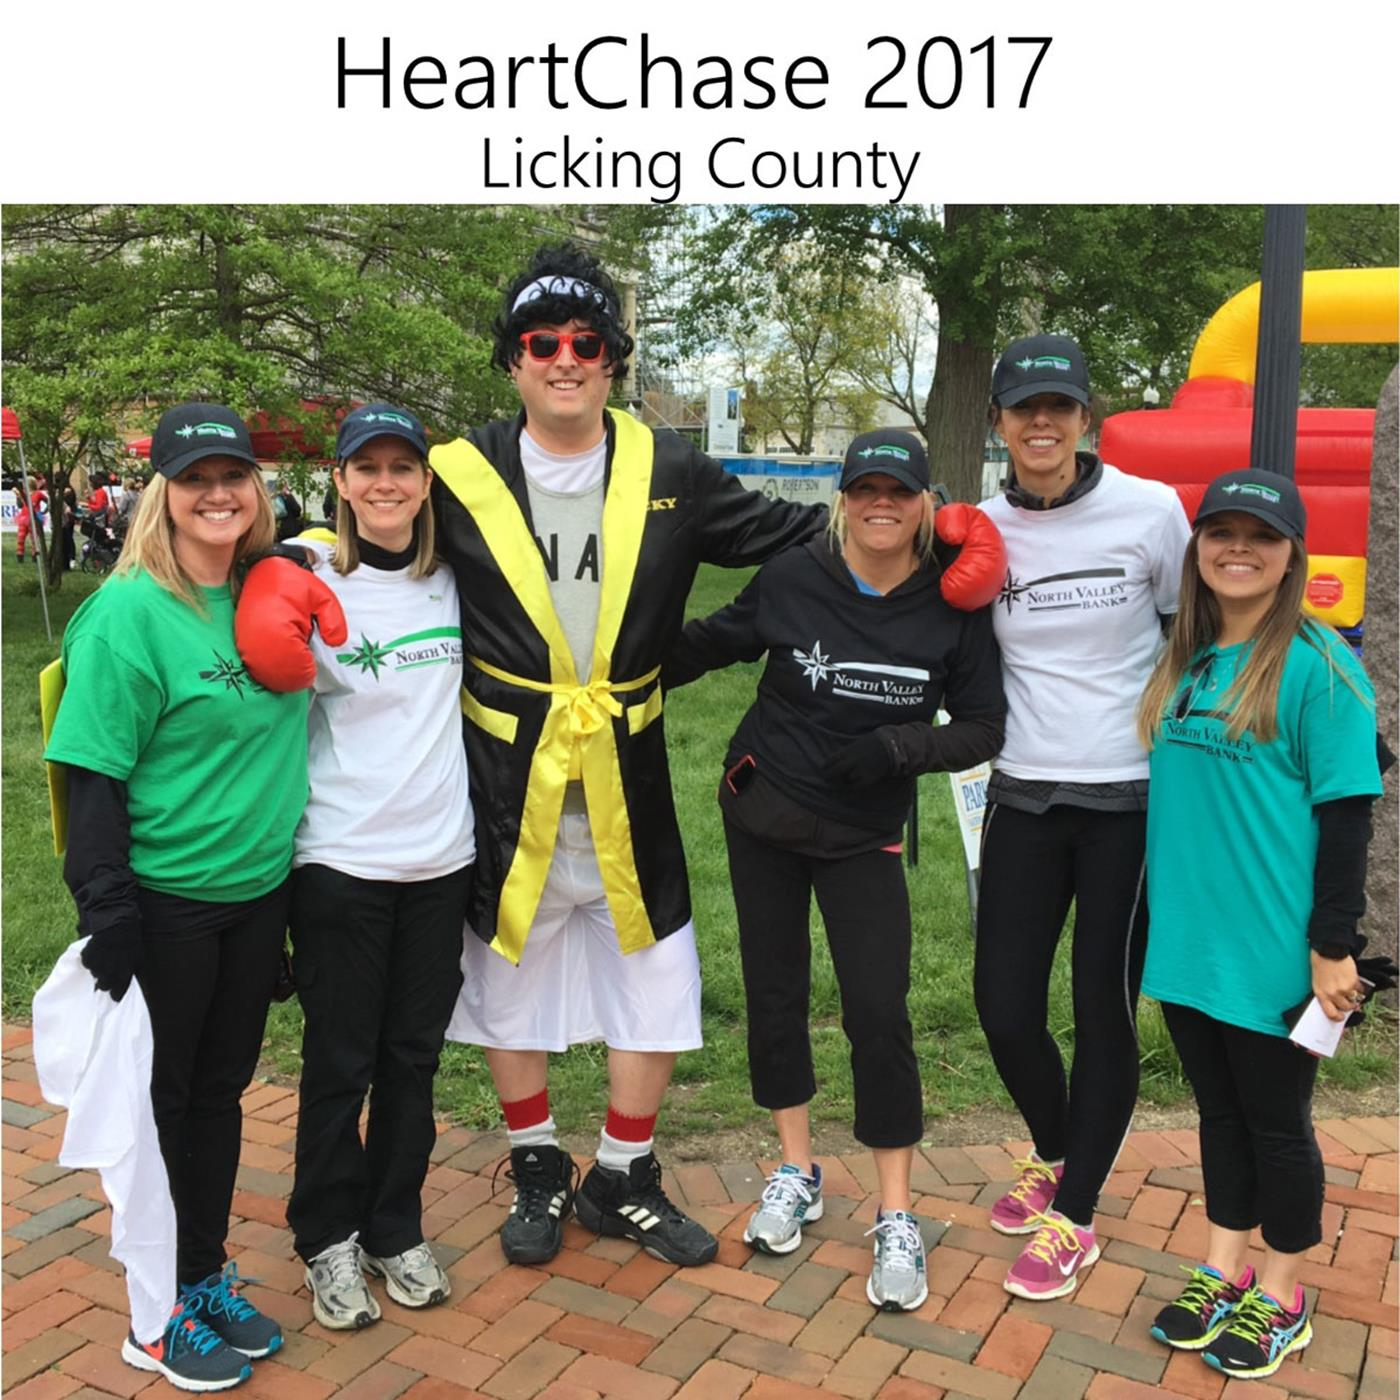 HeartChase Photo